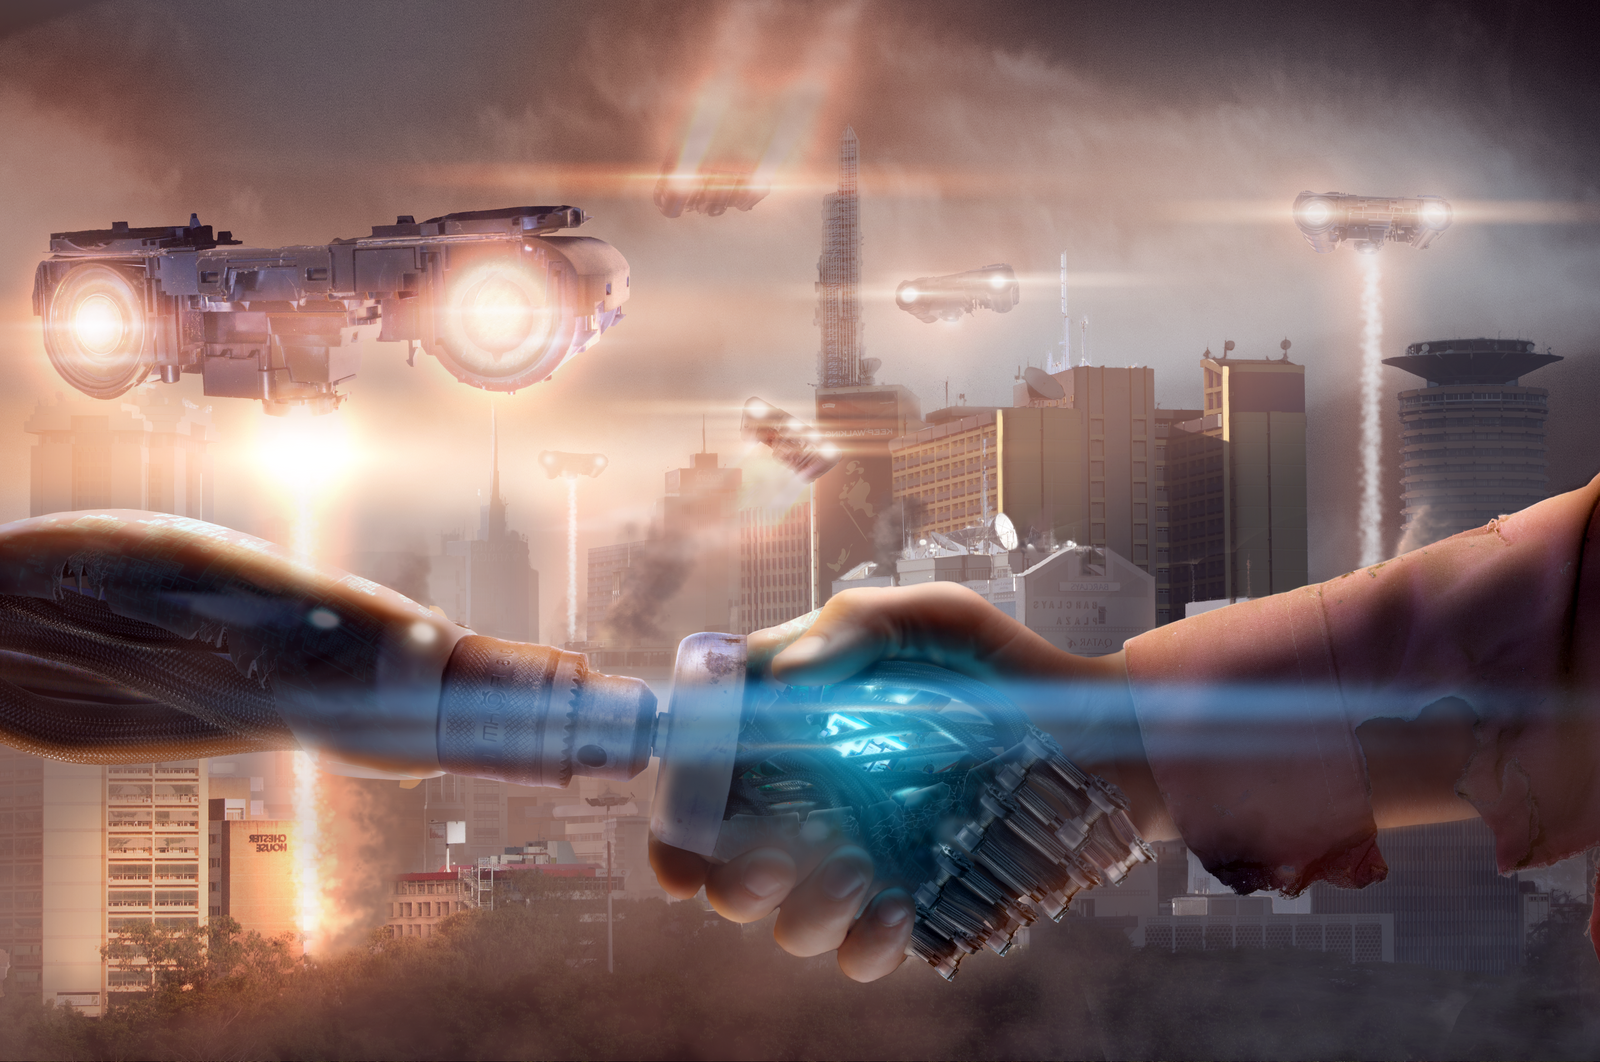 Robot's Vs Aliens by Joshi38